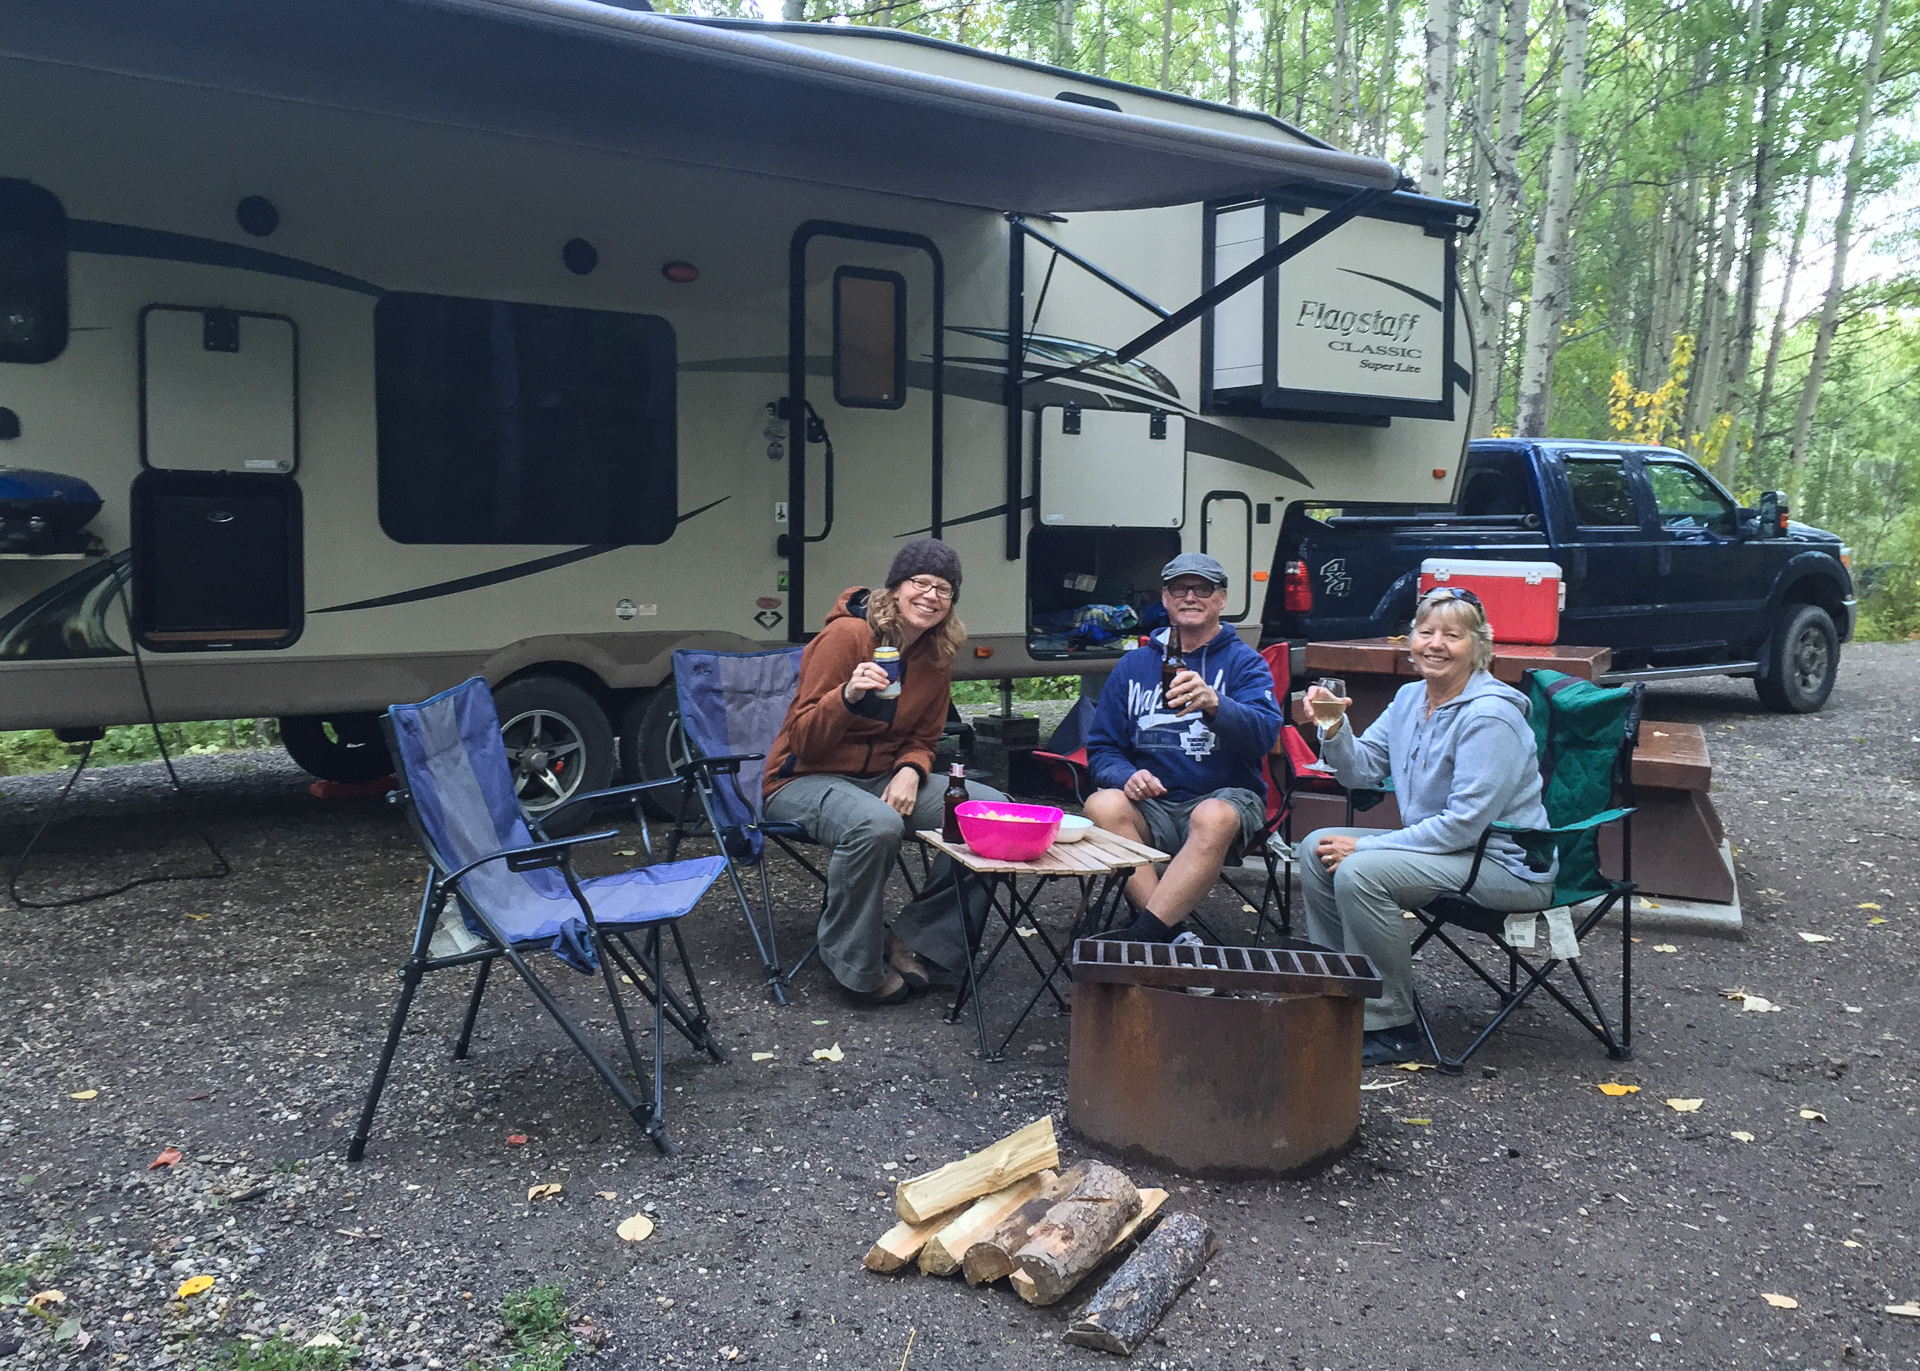 Our last campsite was a great one!